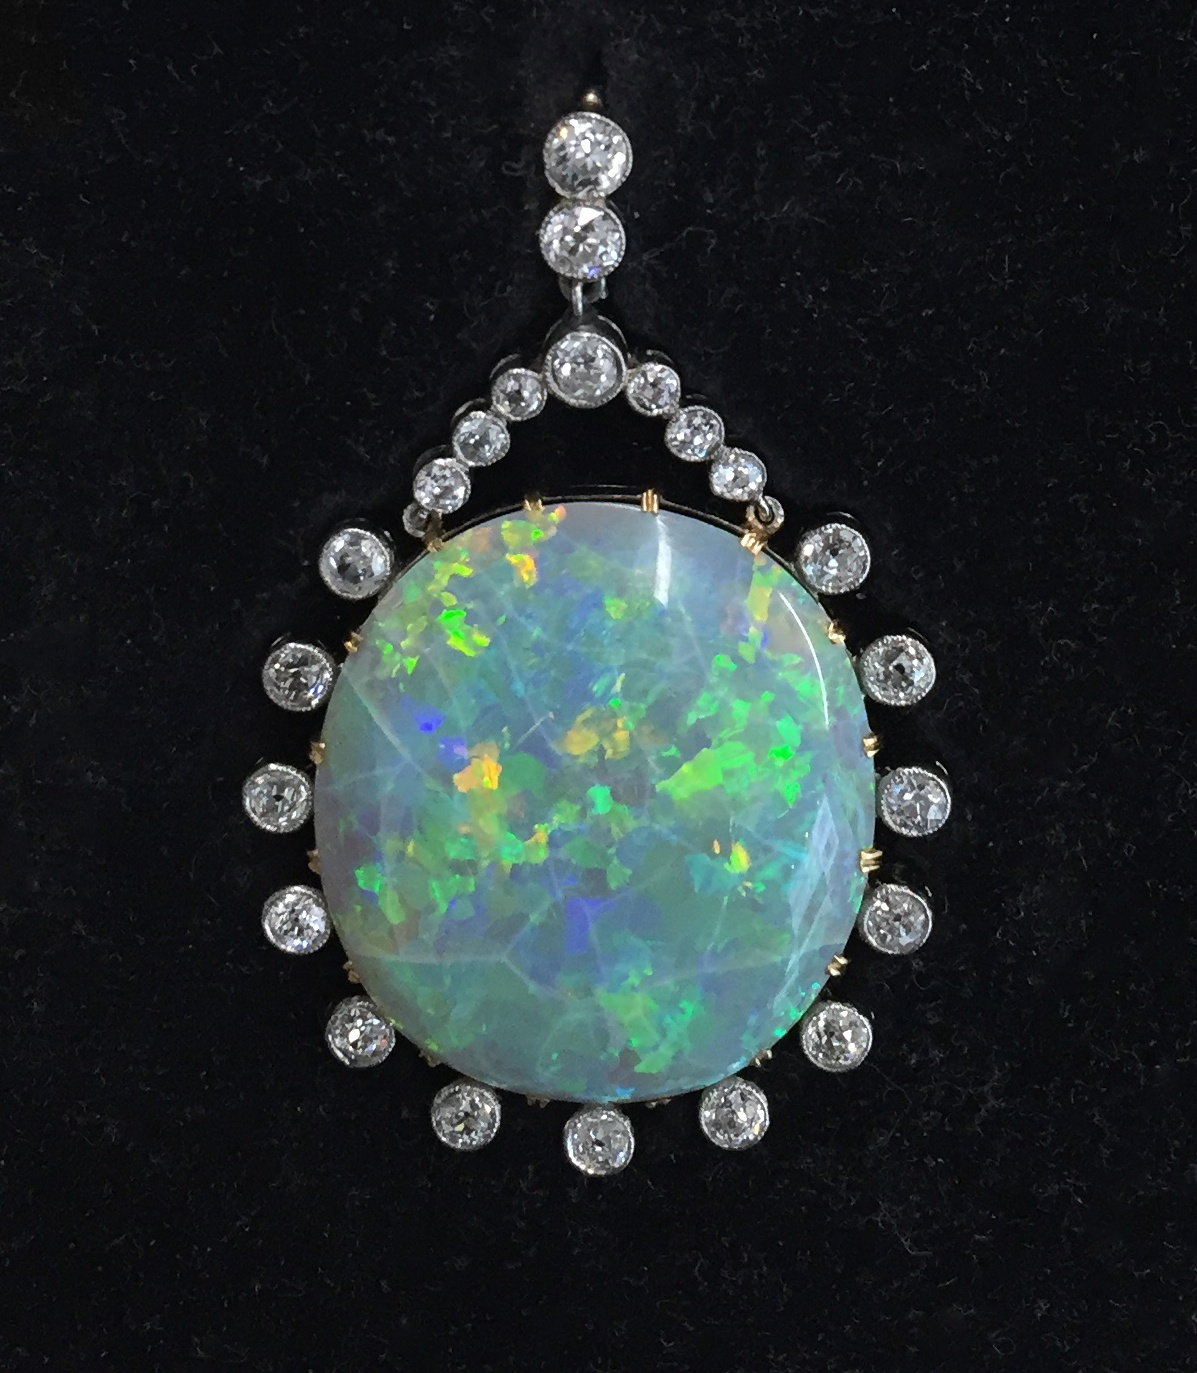 Opal and diamonds pendant.